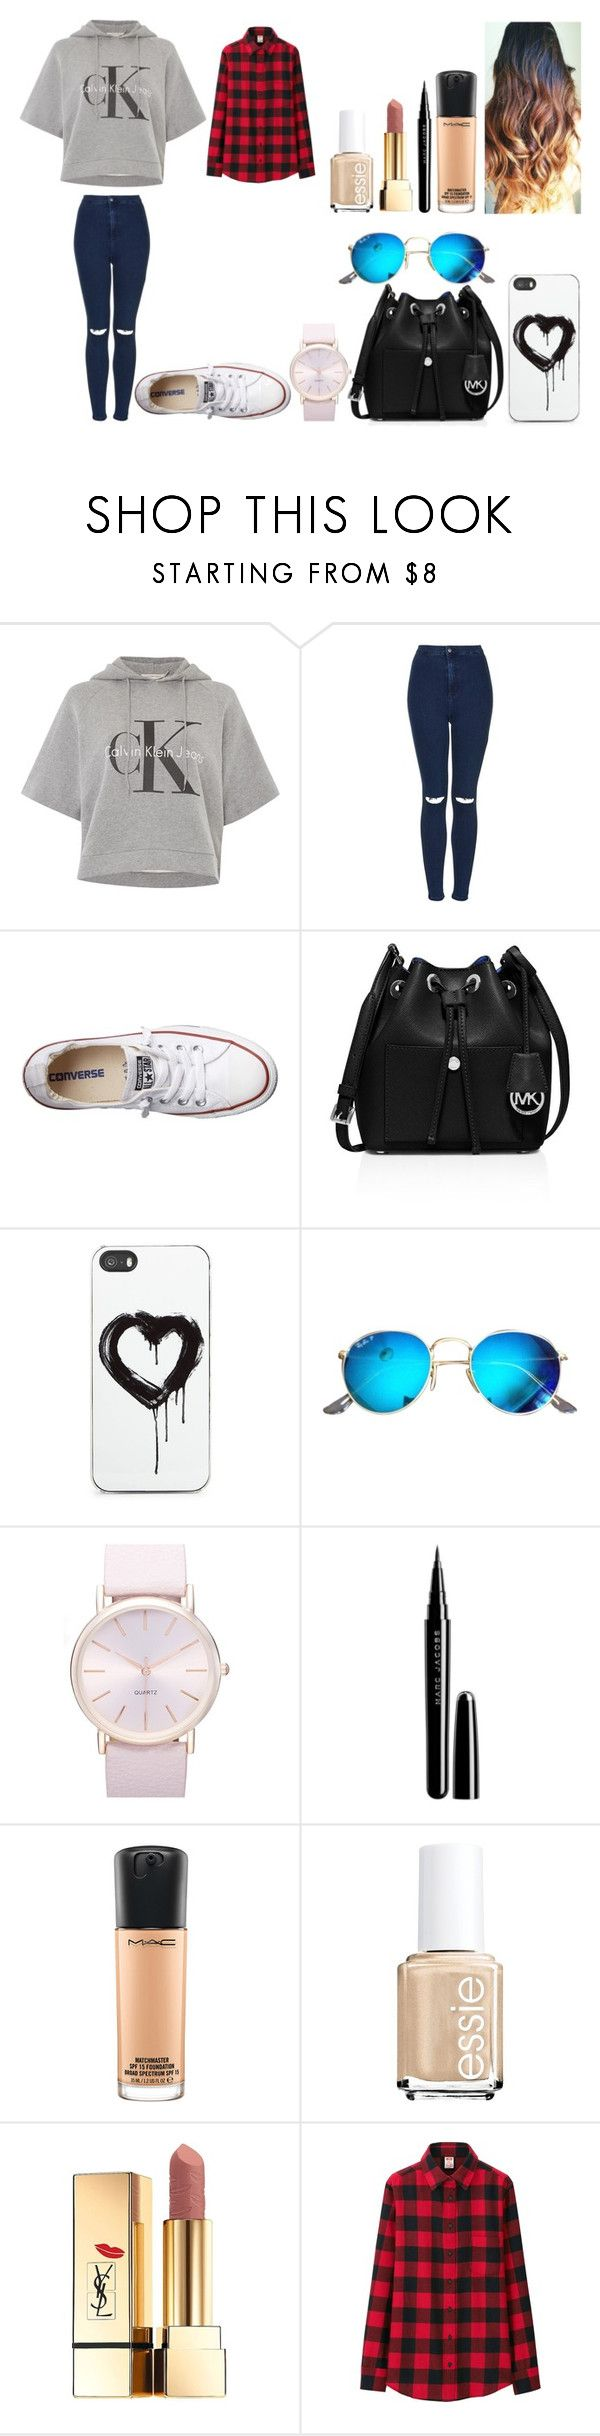 """""""Untitled #460"""" by kalieh092 on Polyvore featuring Calvin Klein, Topshop, Converse, MICHAEL Michael Kors, Zero Gravity, Ray-Ban, BP., Marc Jacobs, MAC Cosmetics and Essie"""